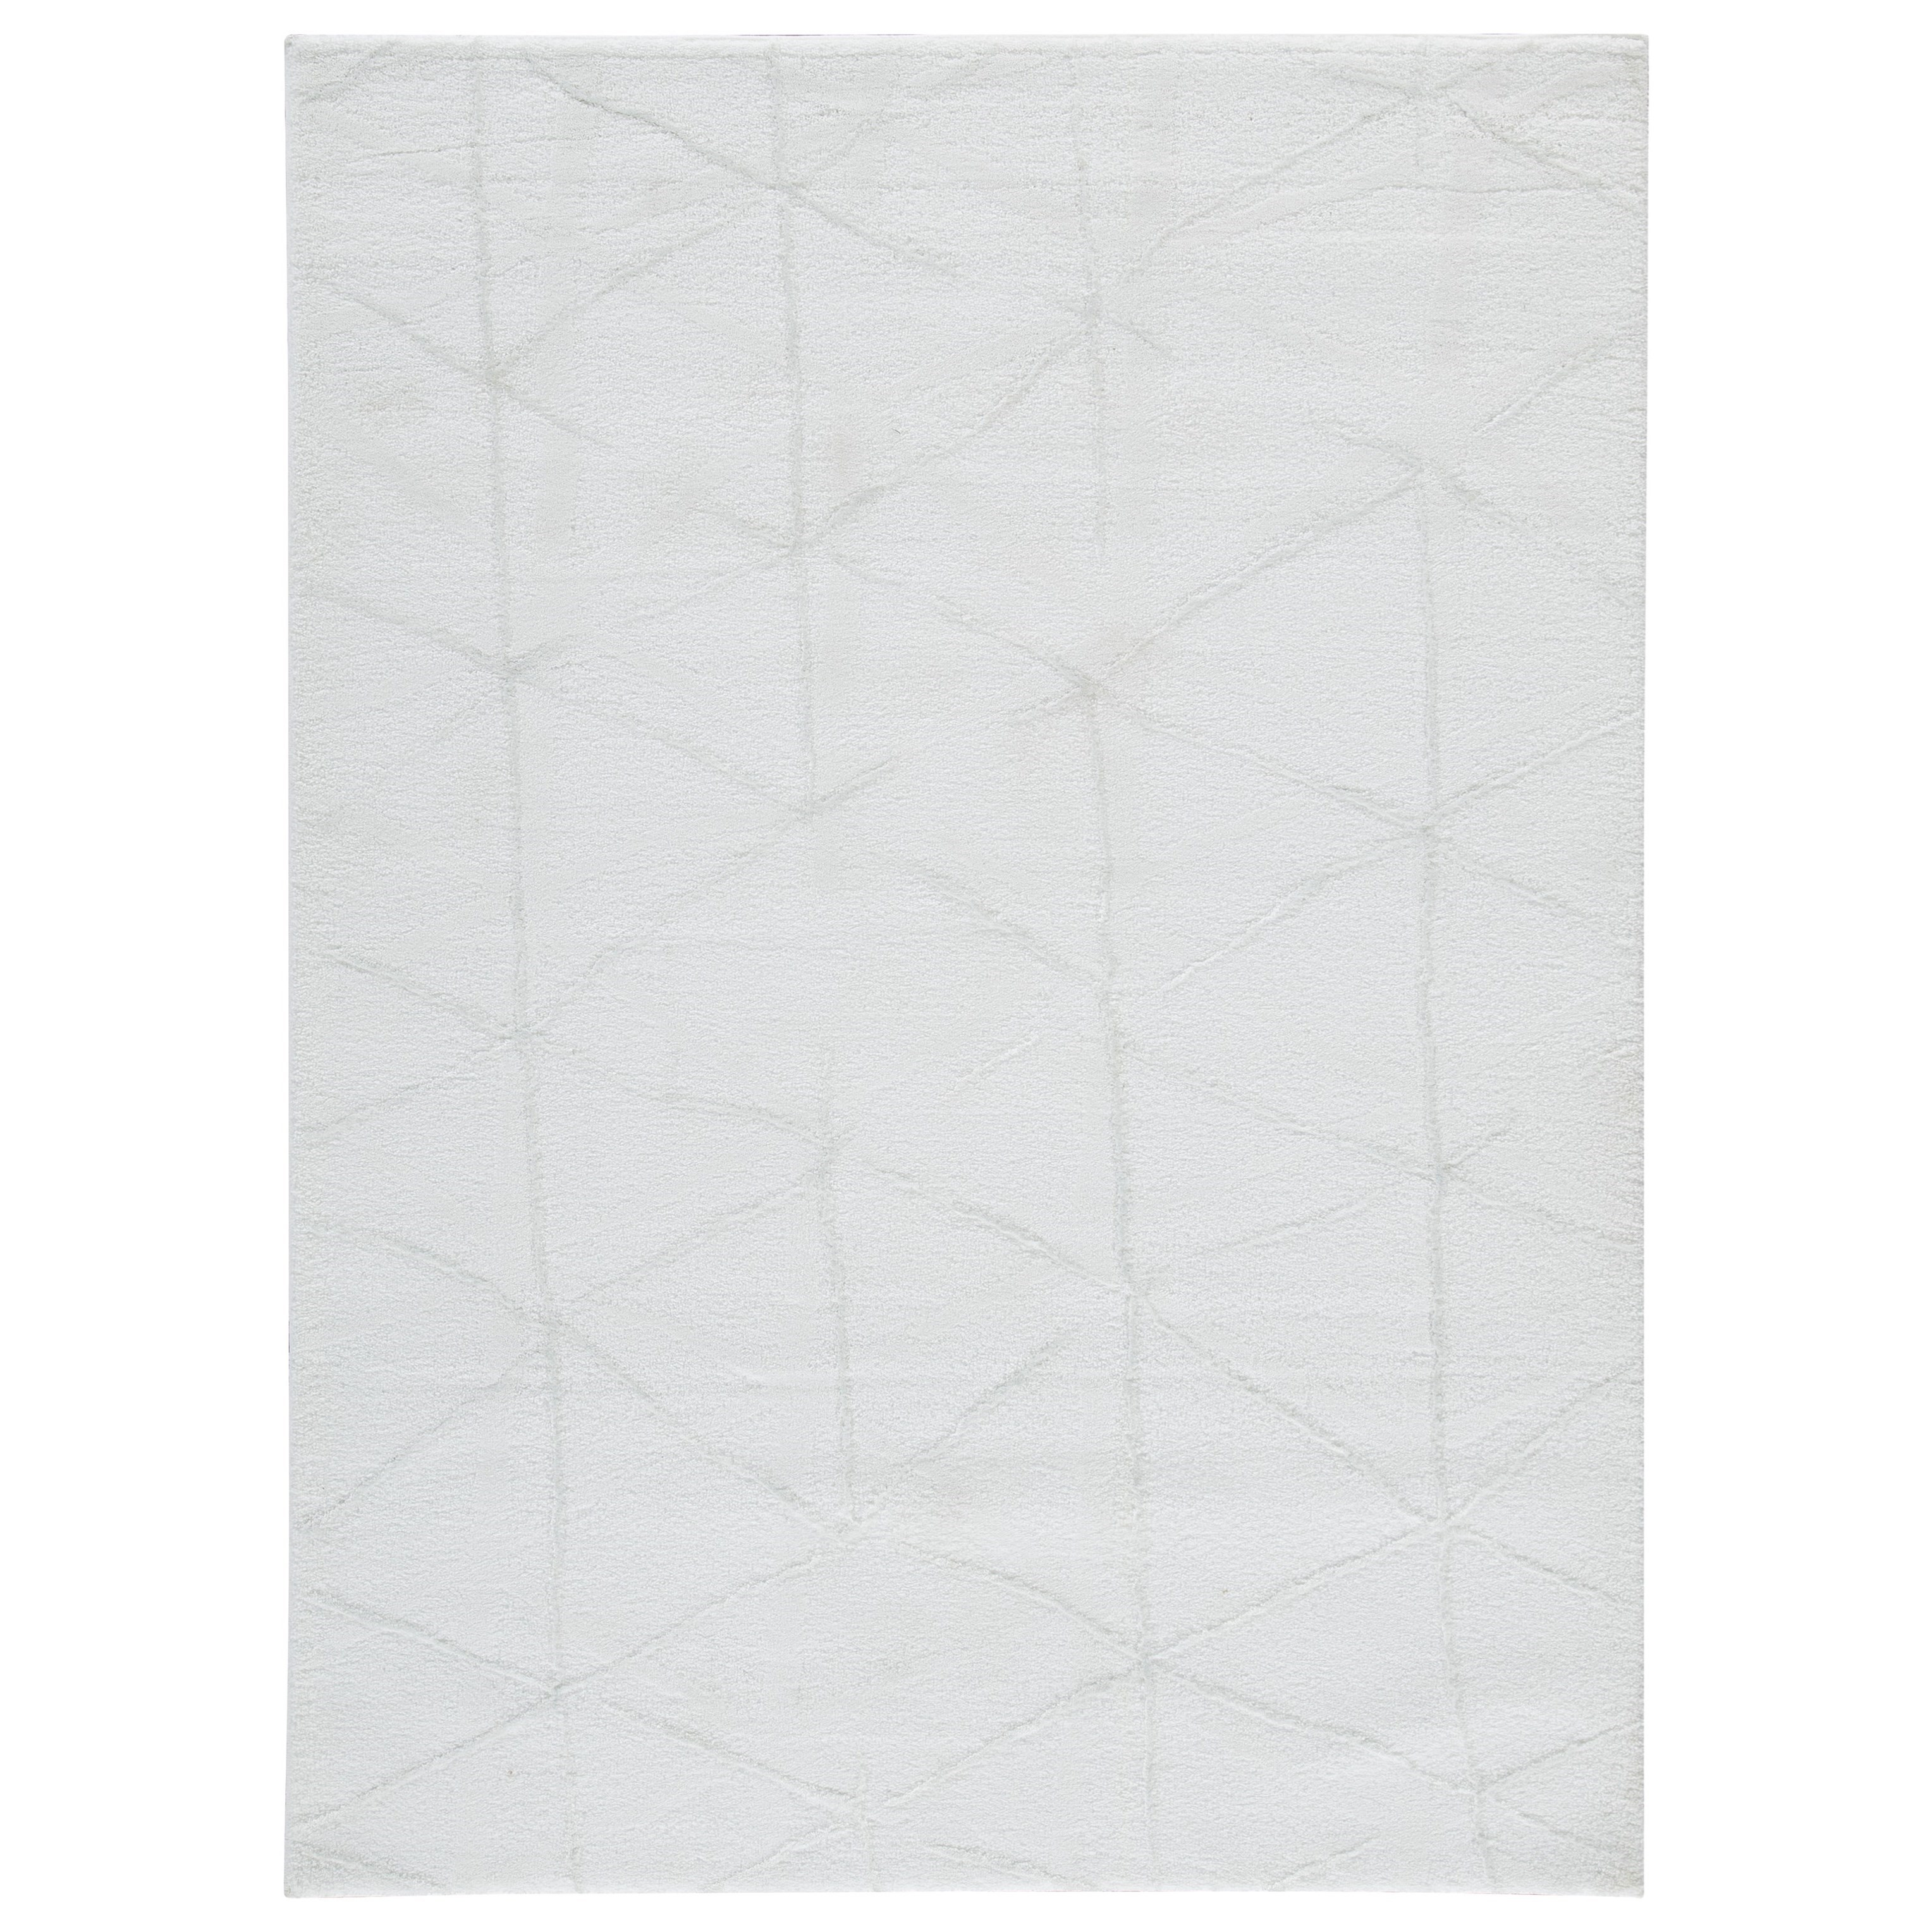 Contemporary Area Rugs Scarrit Ivory Medium Rug by Signature Design by Ashley at Northeast Factory Direct